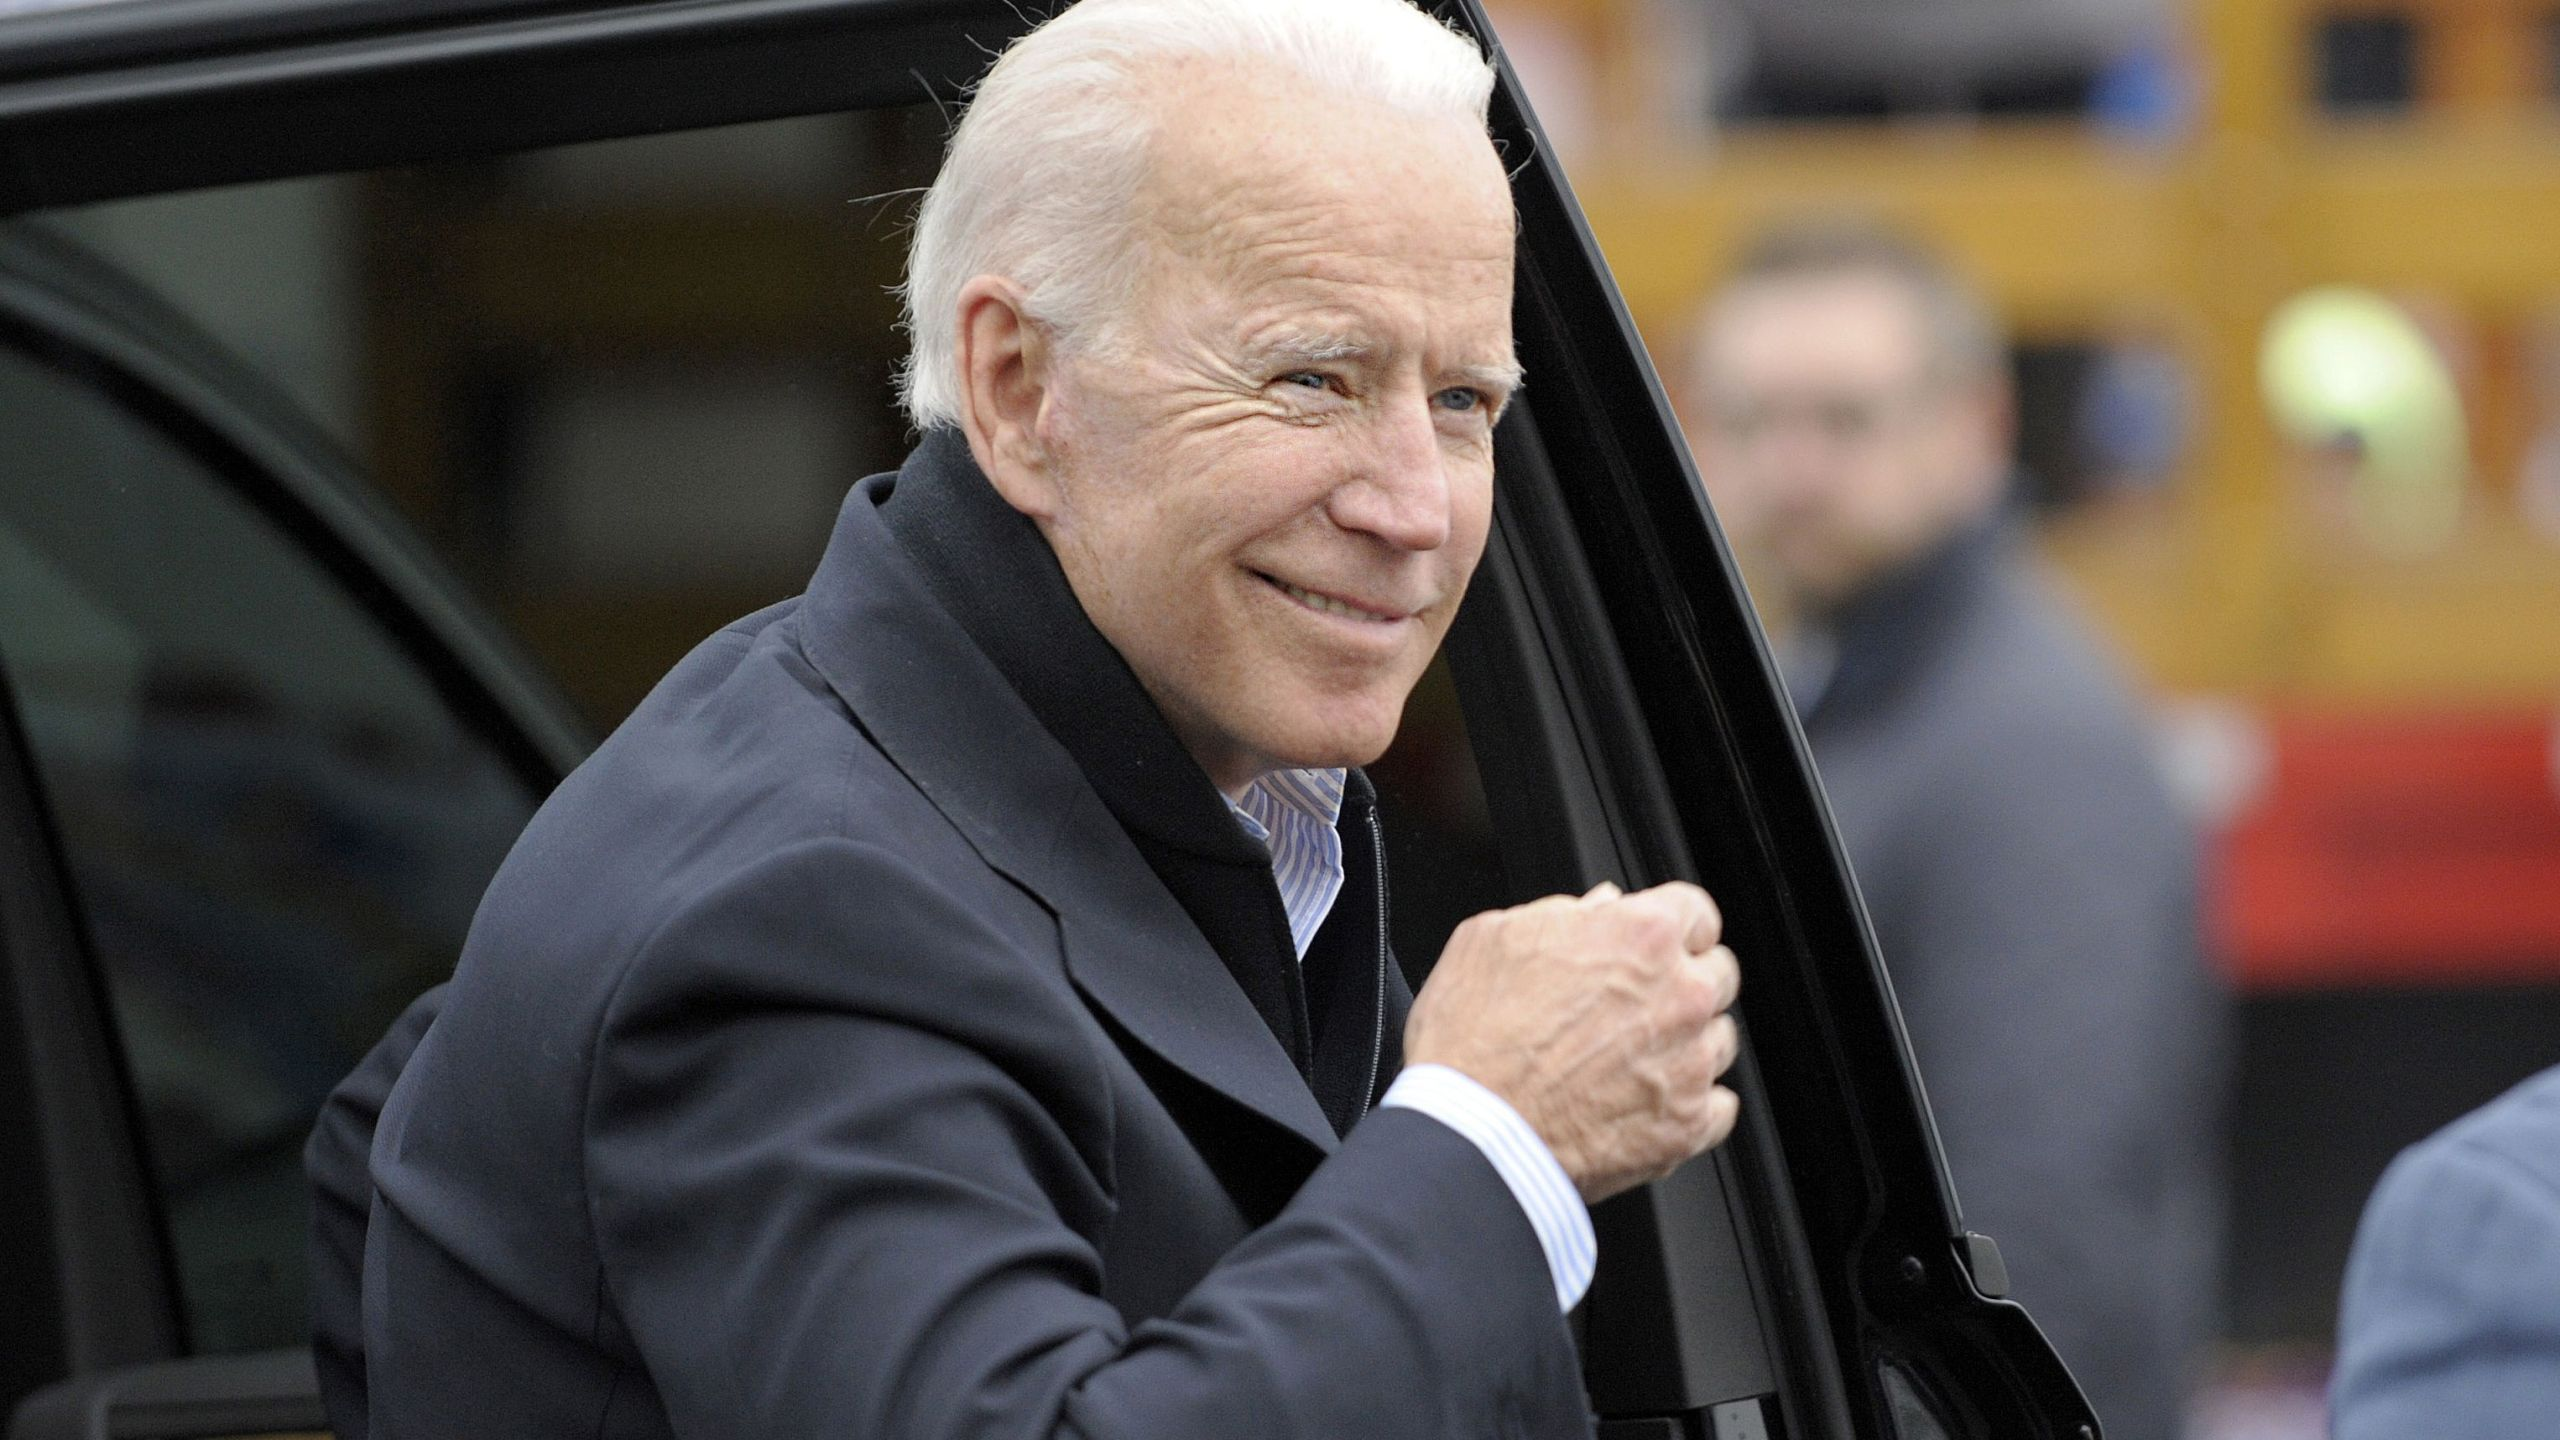 Former US vice president Joe Biden arrives at a rally organized by UFCW Union members to support Stop and Shop employees on strike throughout the region at the Stop and Shop in Dorchester, Massachusetts, on April 18, 2019. (Credit: JOSEPH PREZIOSO/AFP/Getty Images)